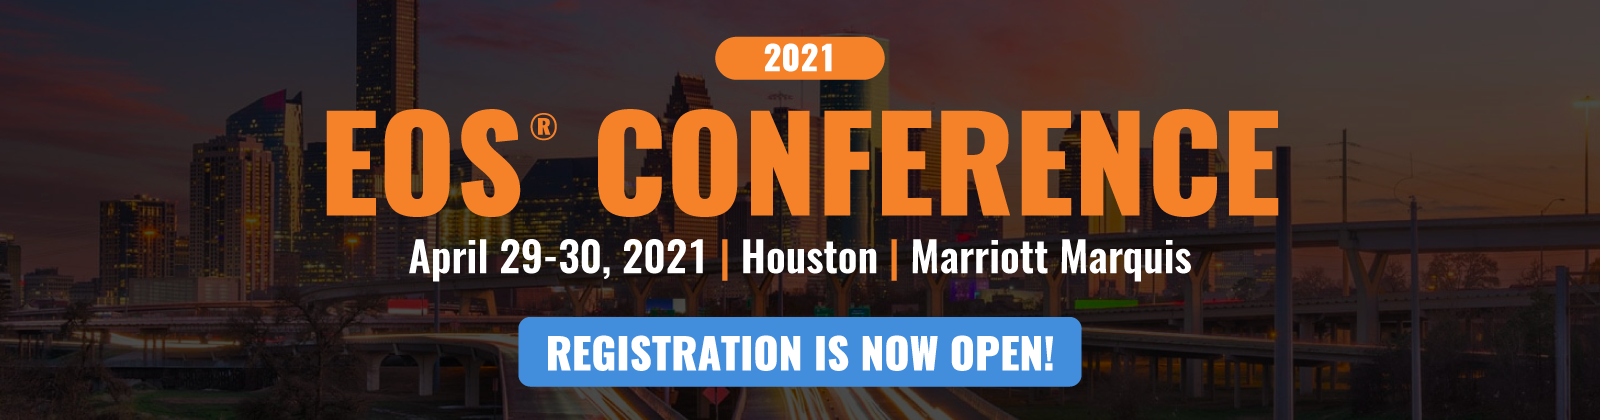 Register for the 2021 EOS Conference